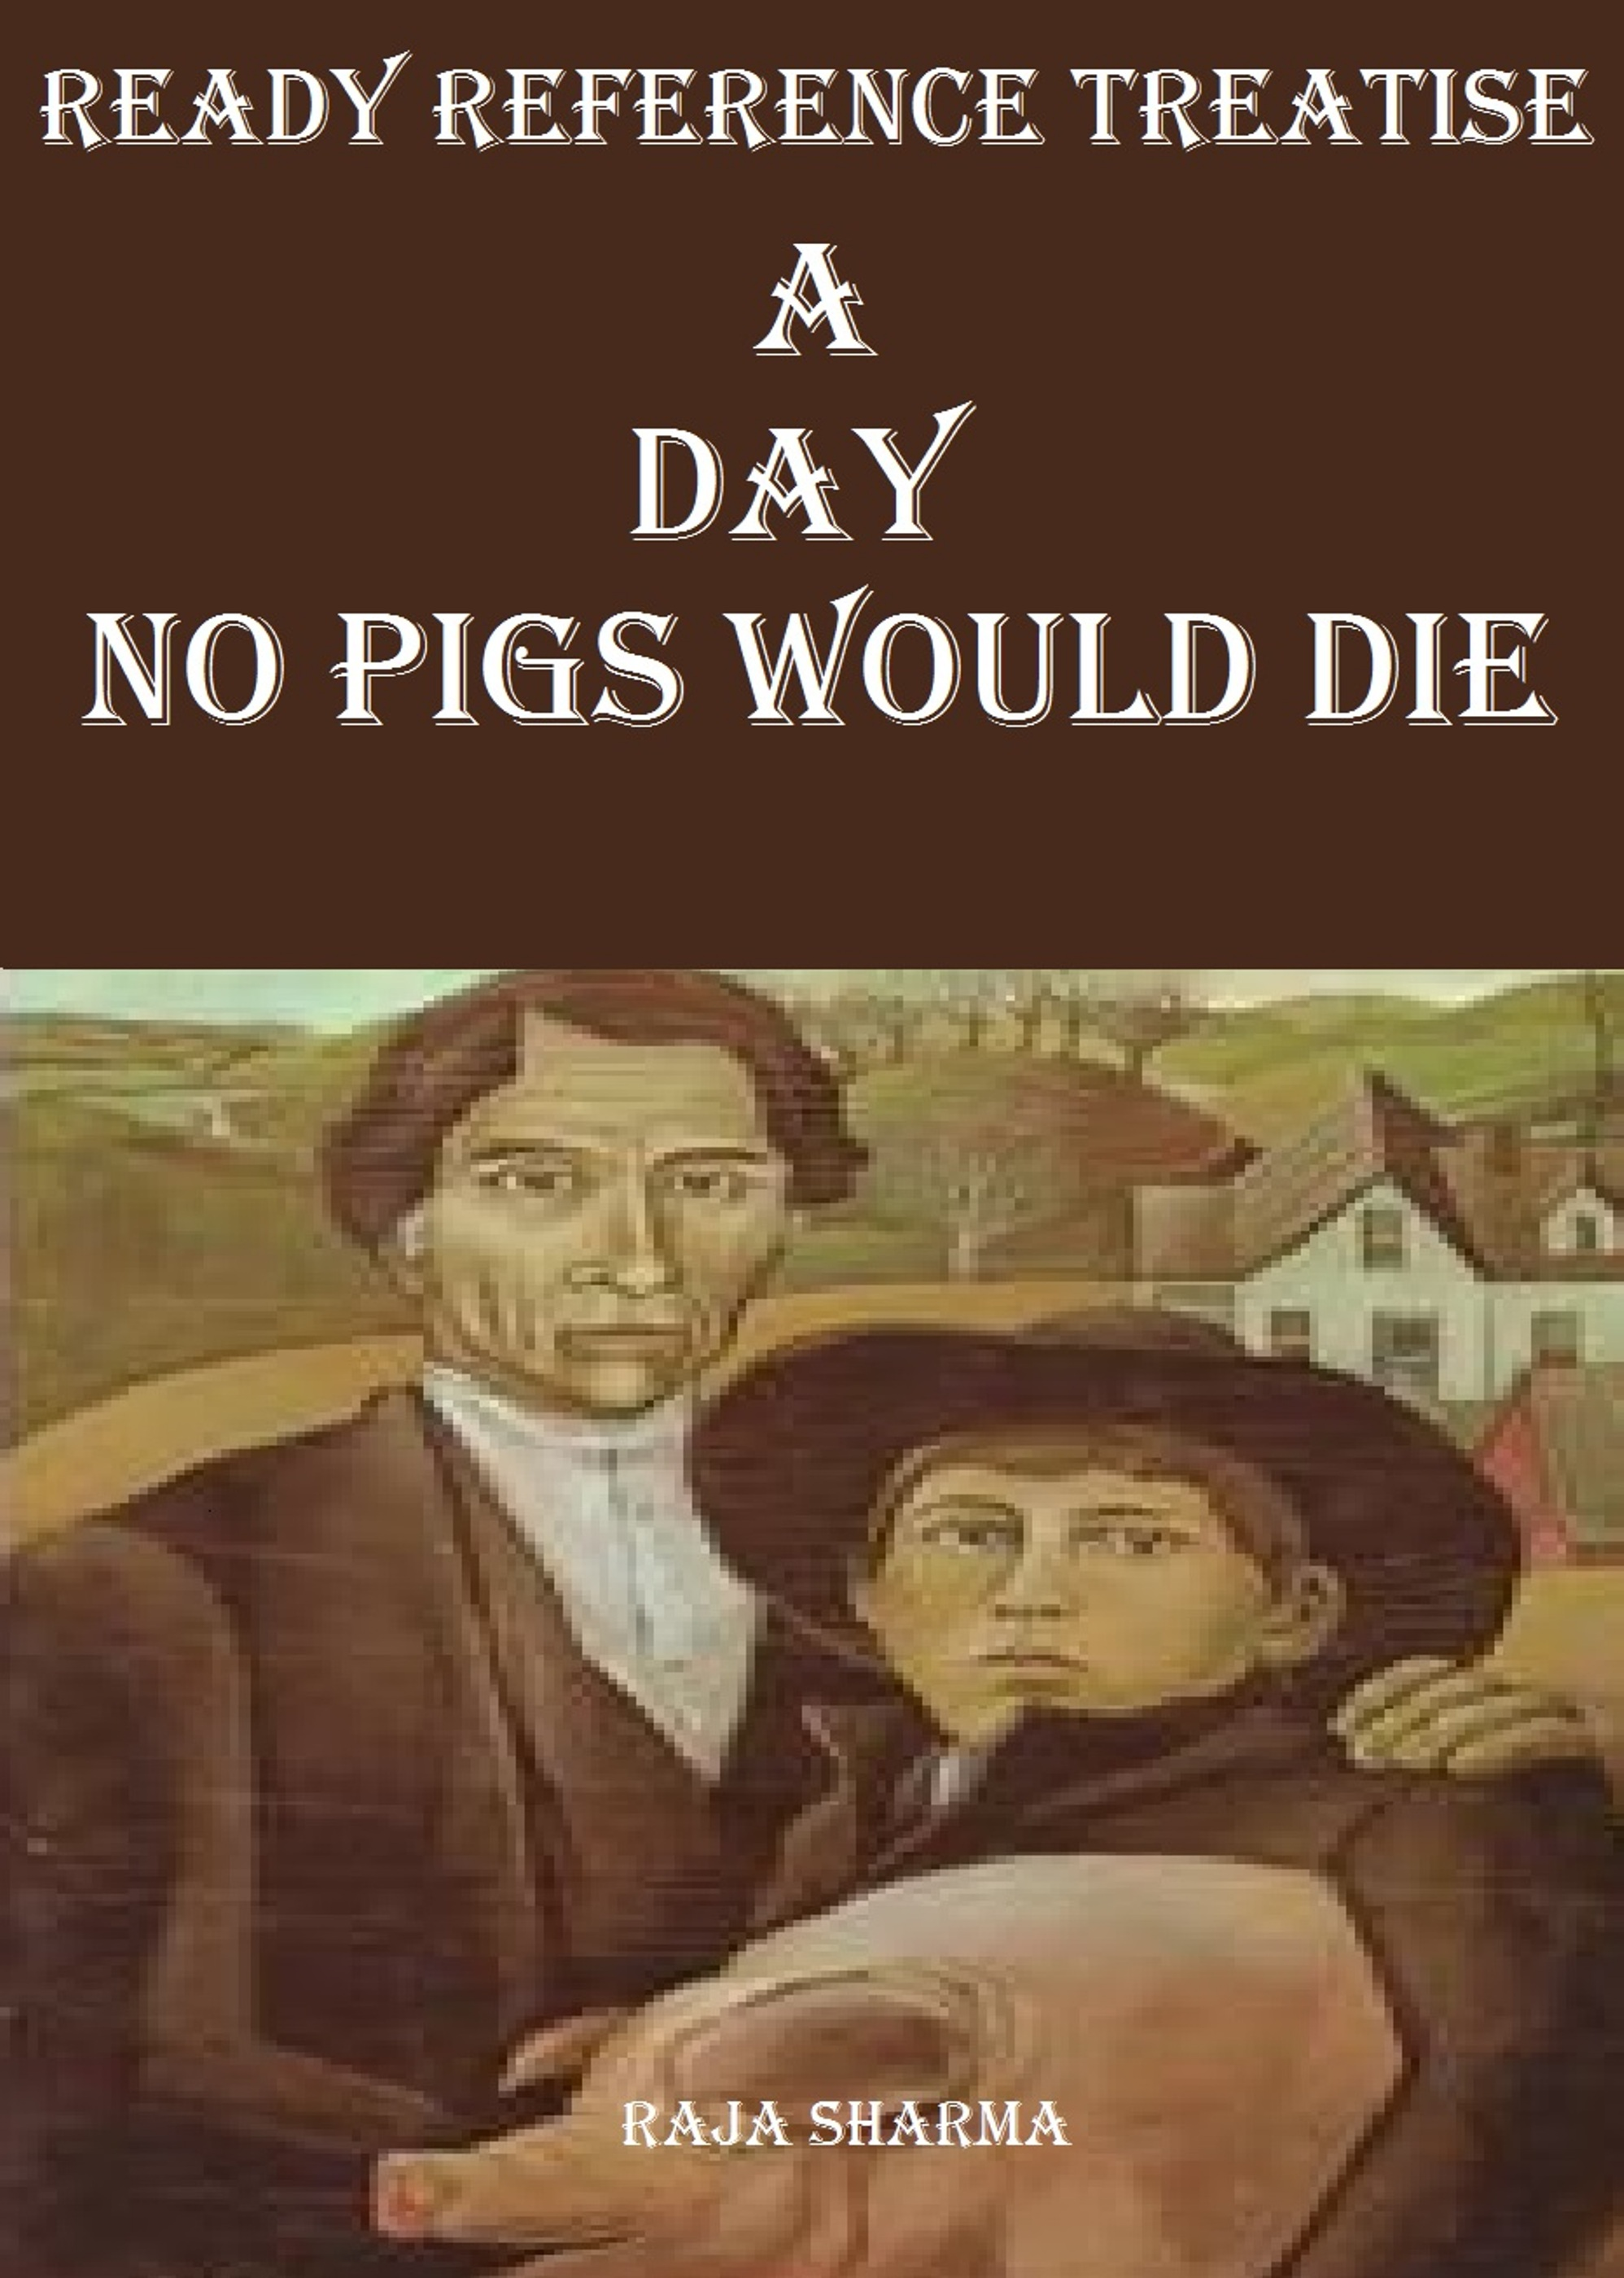 a day no pigs would die Free study guide/summary for a day no pigs would die previous page | table of contents | next page downloadable / printable version free booknotes - a day no pigs would die.